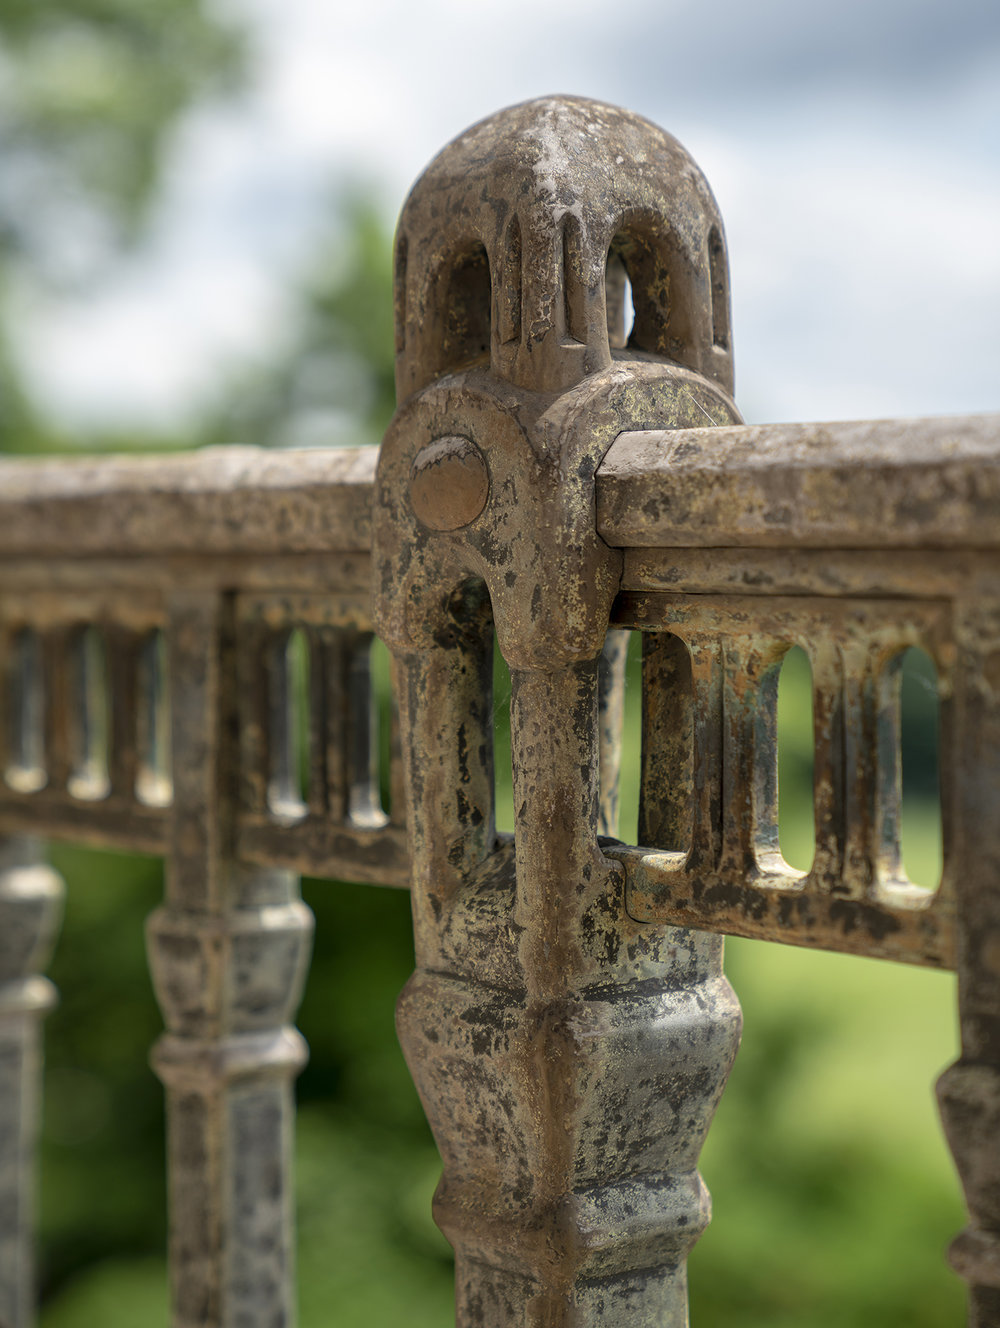 Figure 23: A detail of the remarkable metalwork skills used to create the Monel metal railing.